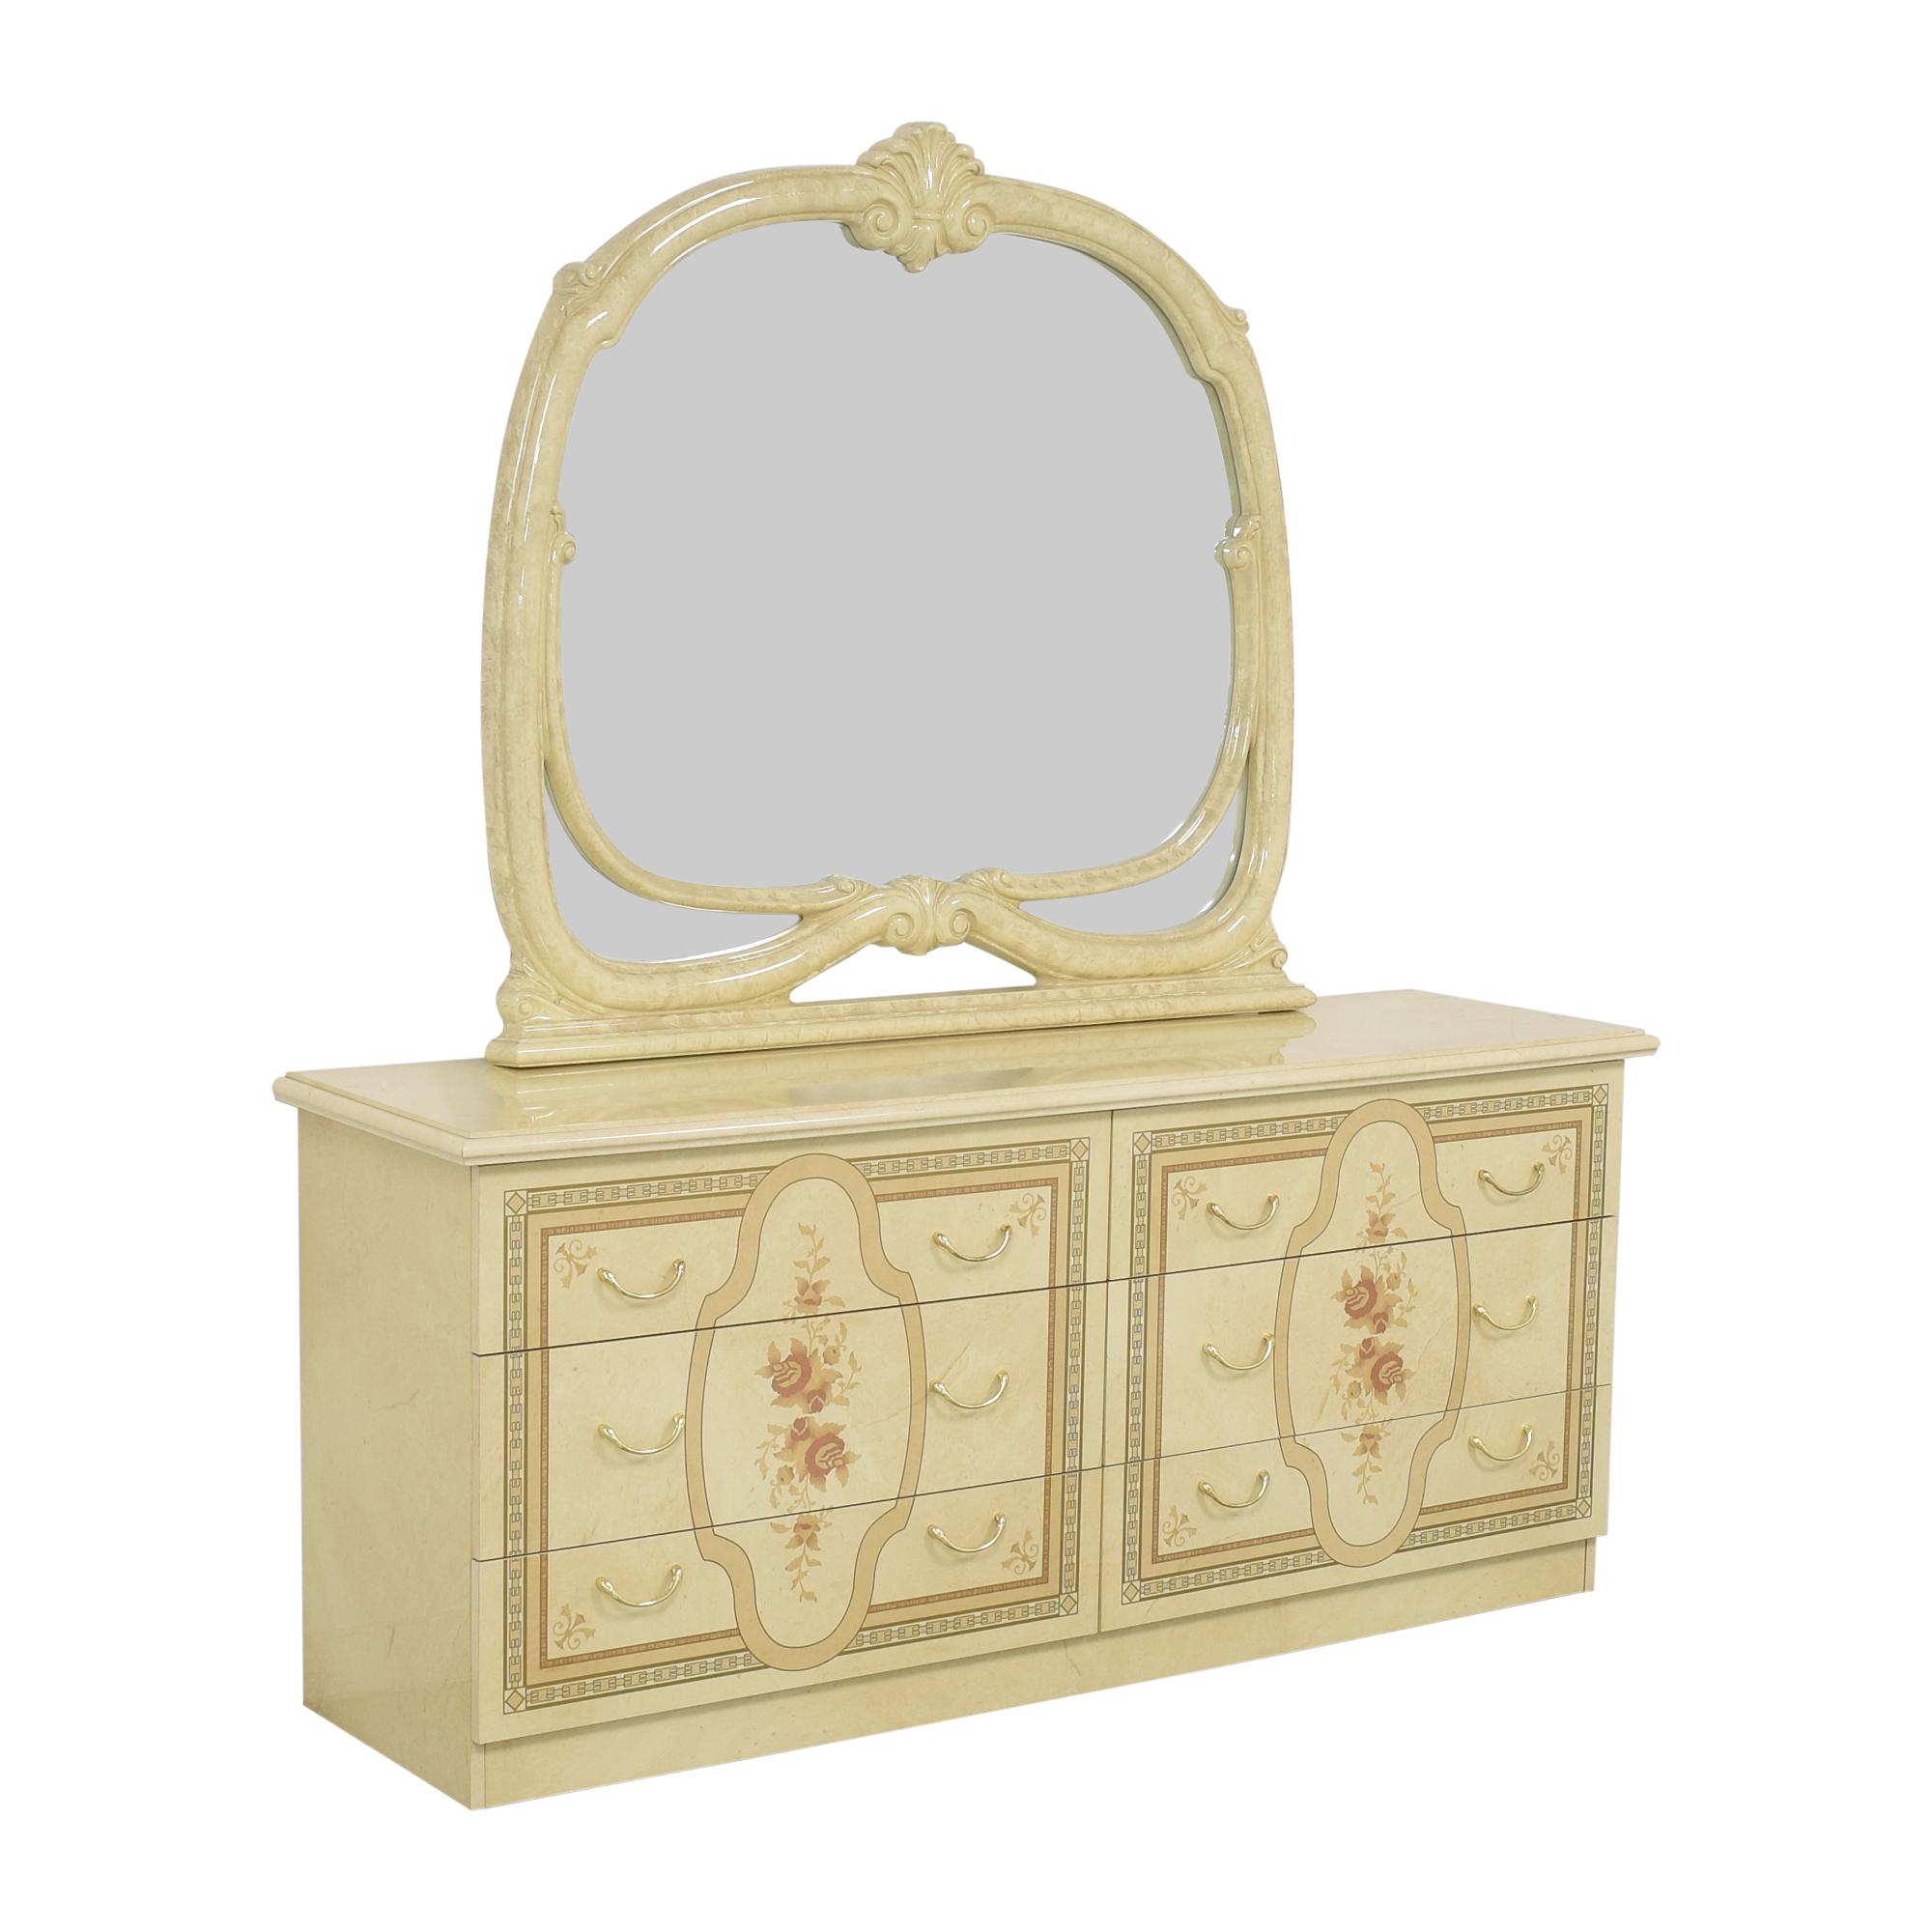 Roma Furniture Roma Furniture Dresser with Mirror ivory